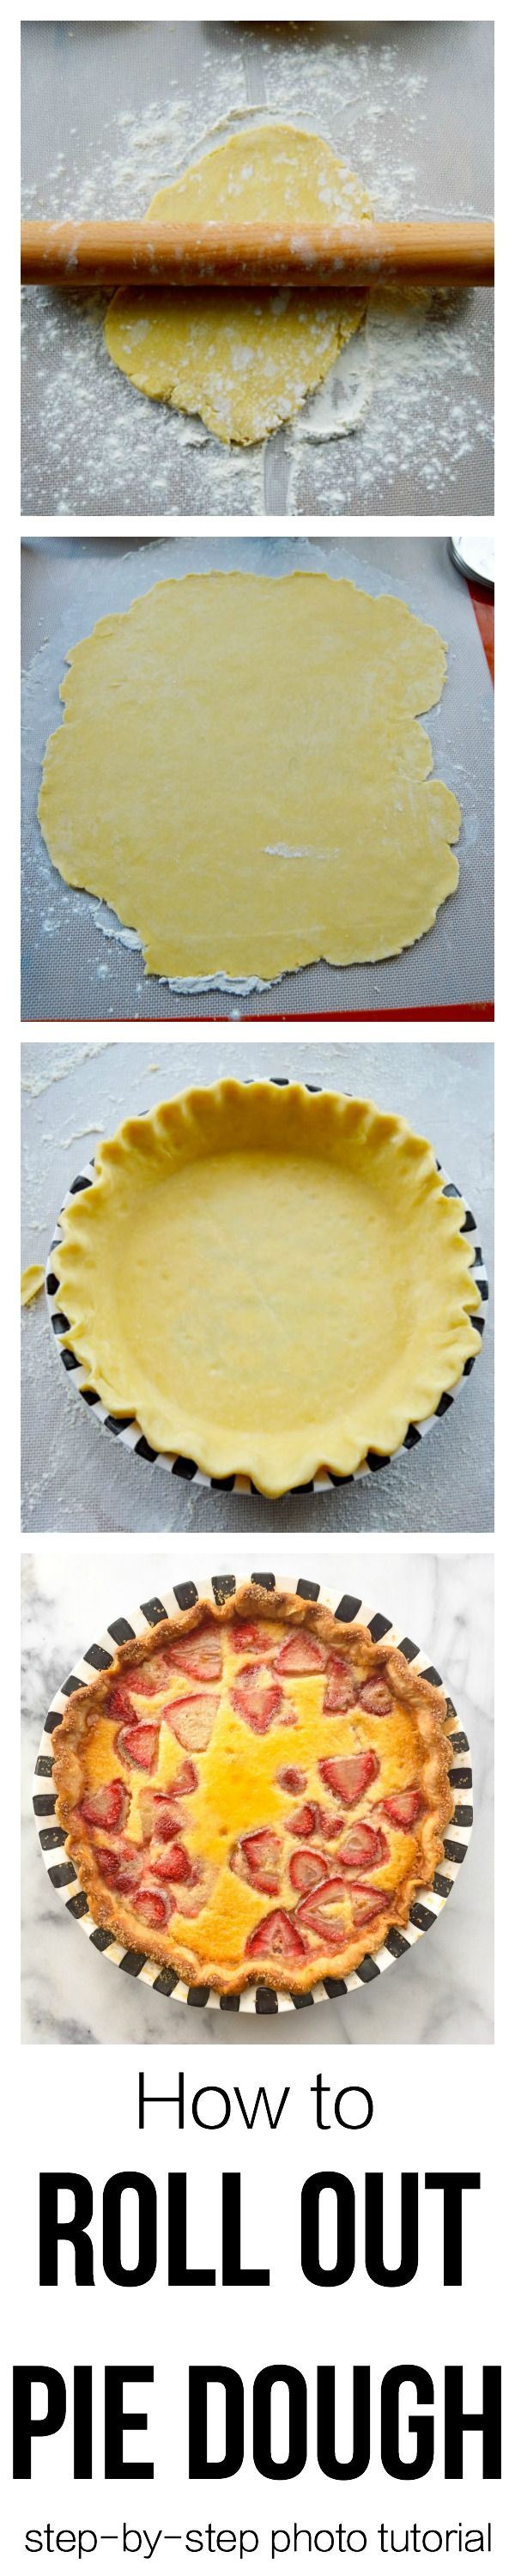 Learn the best tricks and tips for rolling out pie dough.  With this advice, you will never be tempted to buy pie dough at the store again. Complete with a recipe for the best ALL BUTTER PIE CRUST. This tutorial with step-by-step photos will walk you through every aspect of making pie dough and rolling it out.